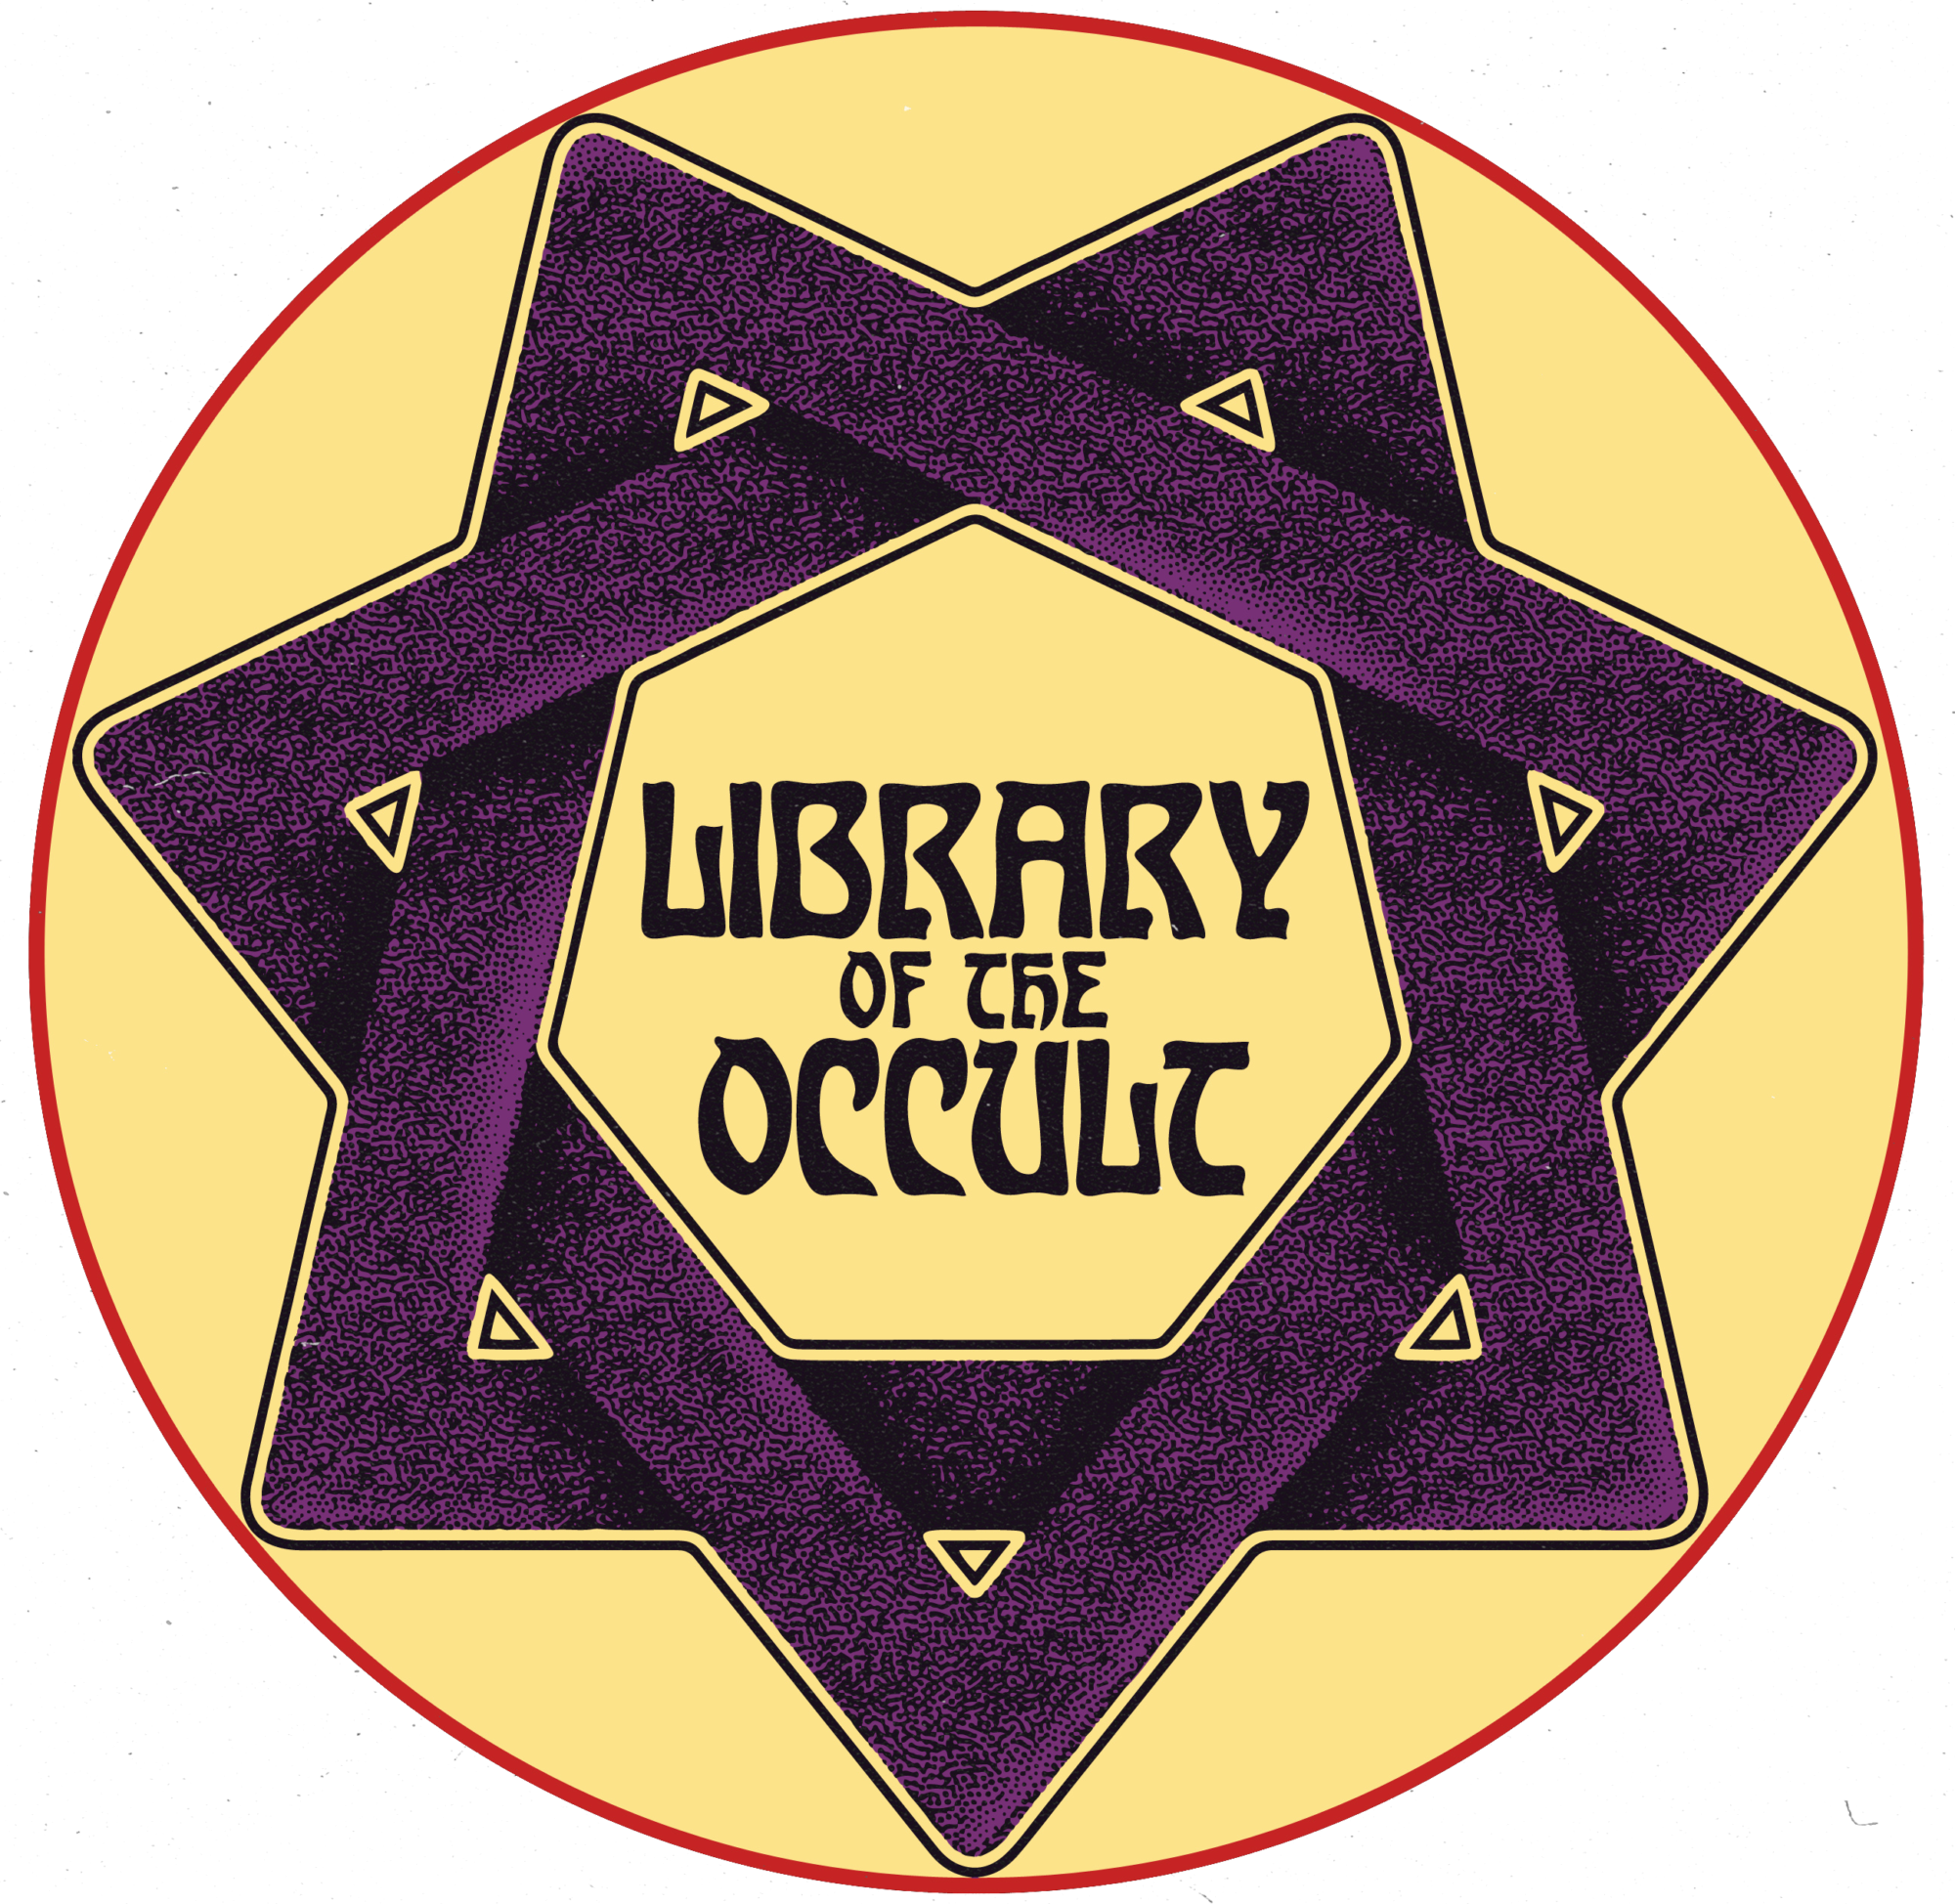 Library Of The Occult logo